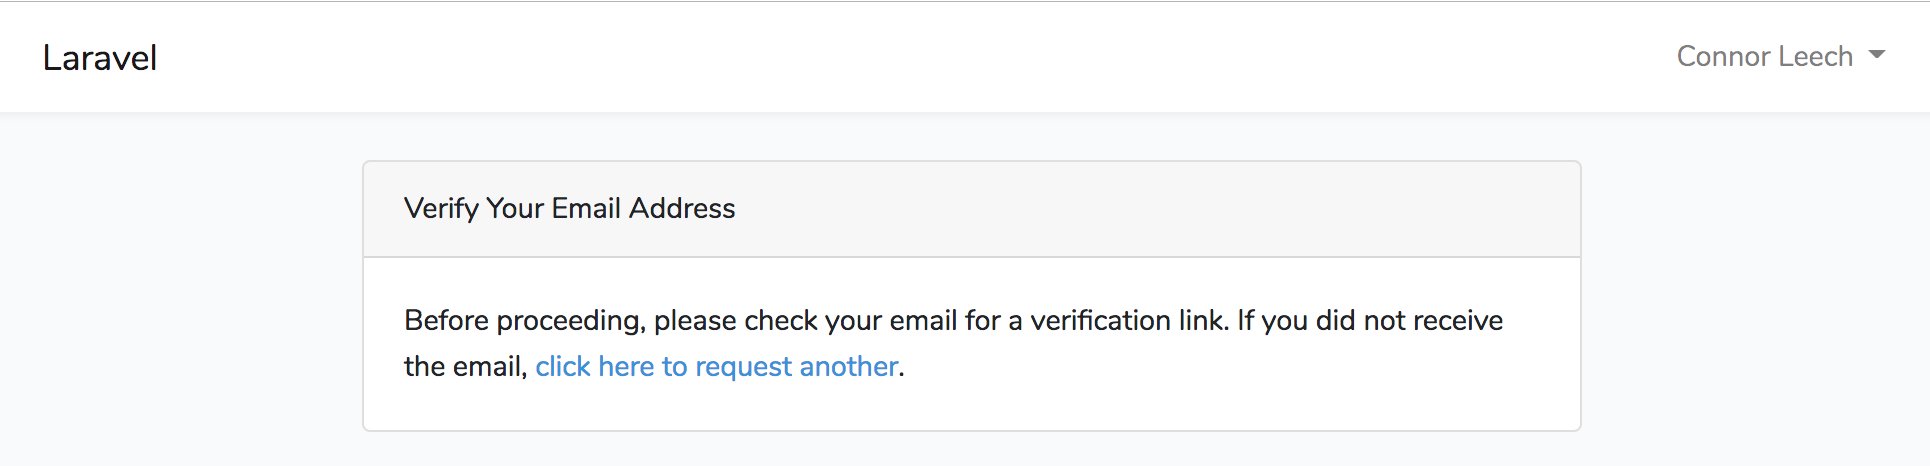 Landing page if user has not verified their email.